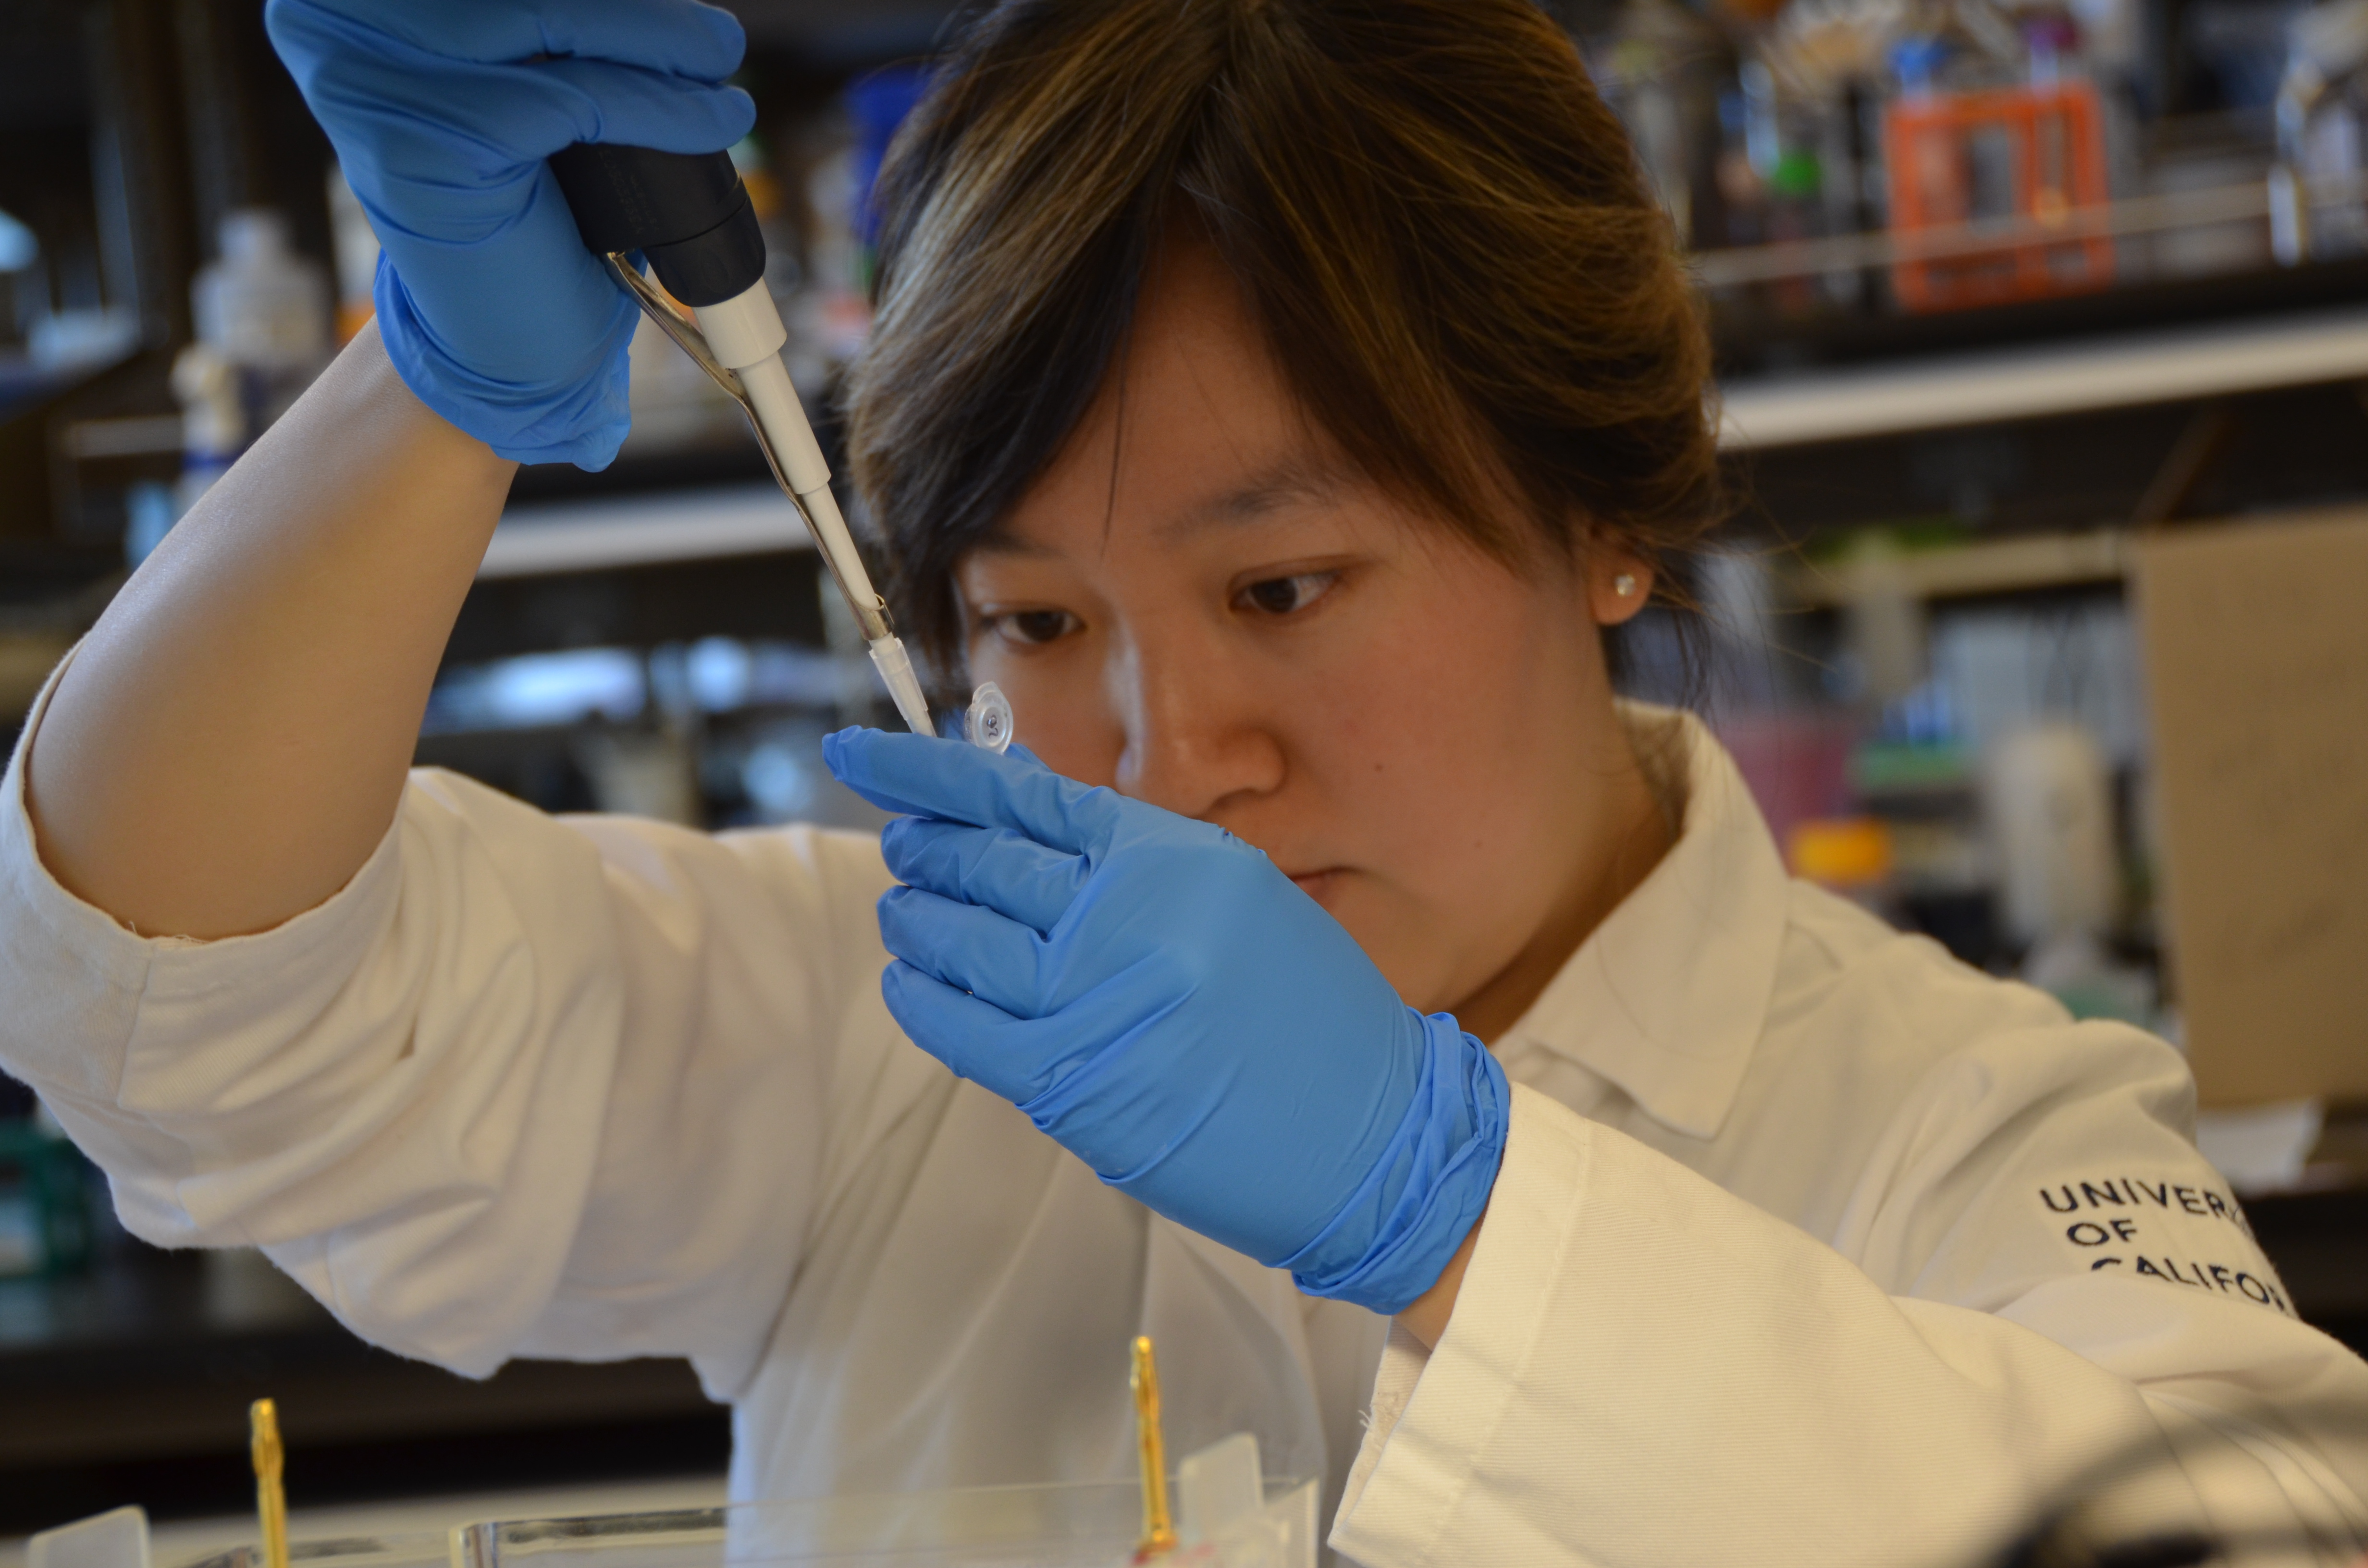 Photo of Jessica wearing a white lab coat and blue gloves using a pipette to transport a liquid.